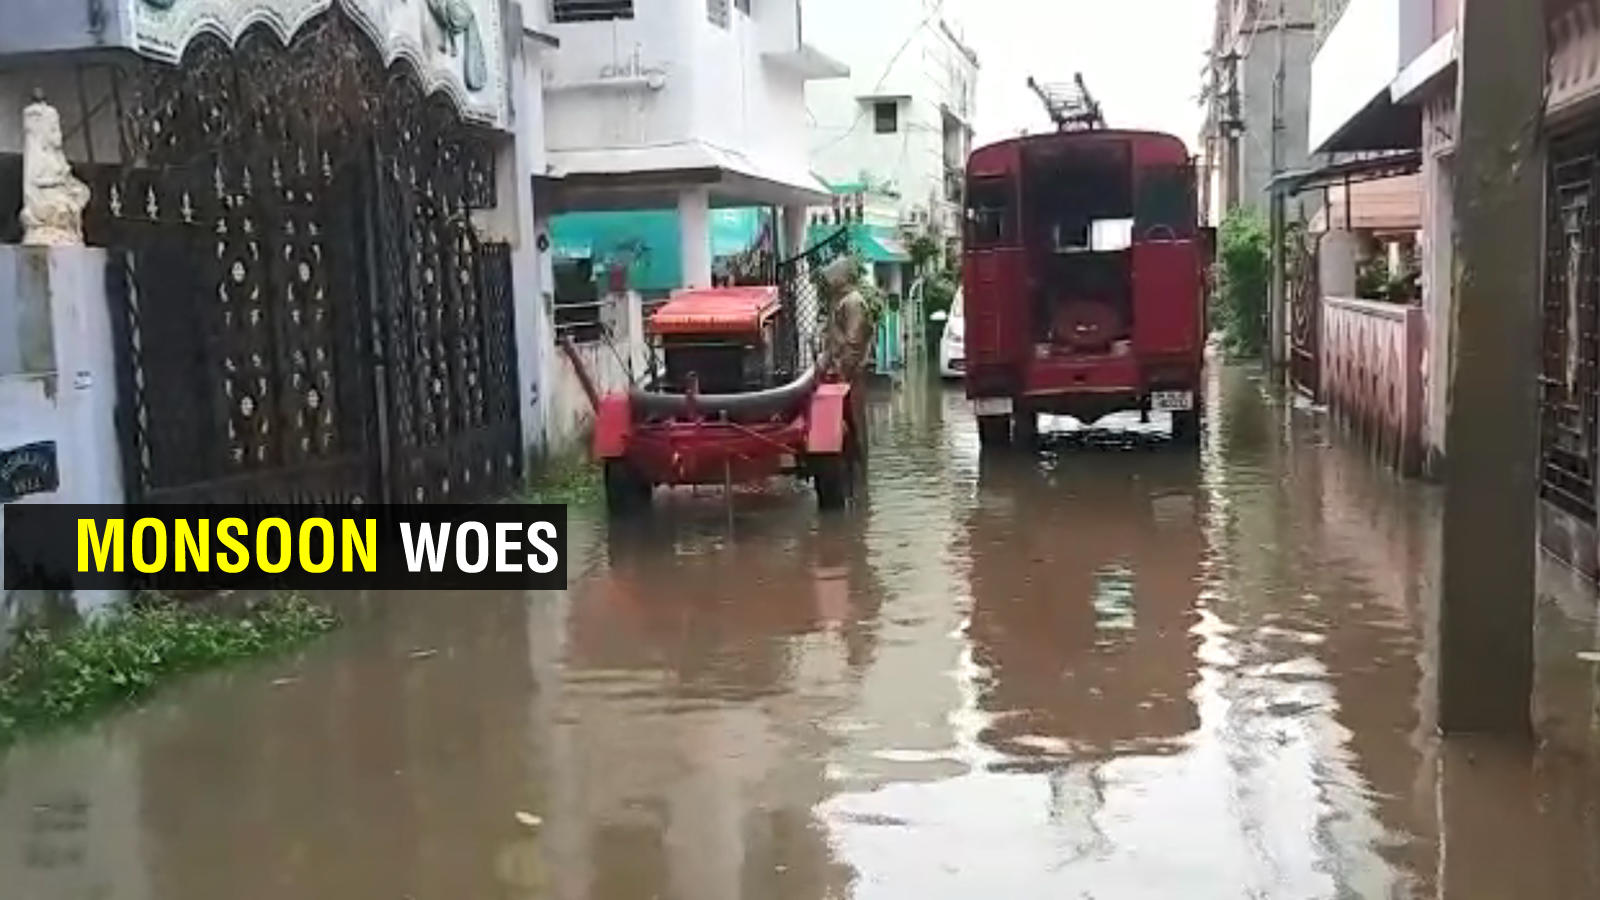 bhubaneswar-bmc-officials-swing-into-action-to-end-waterlogging-woes